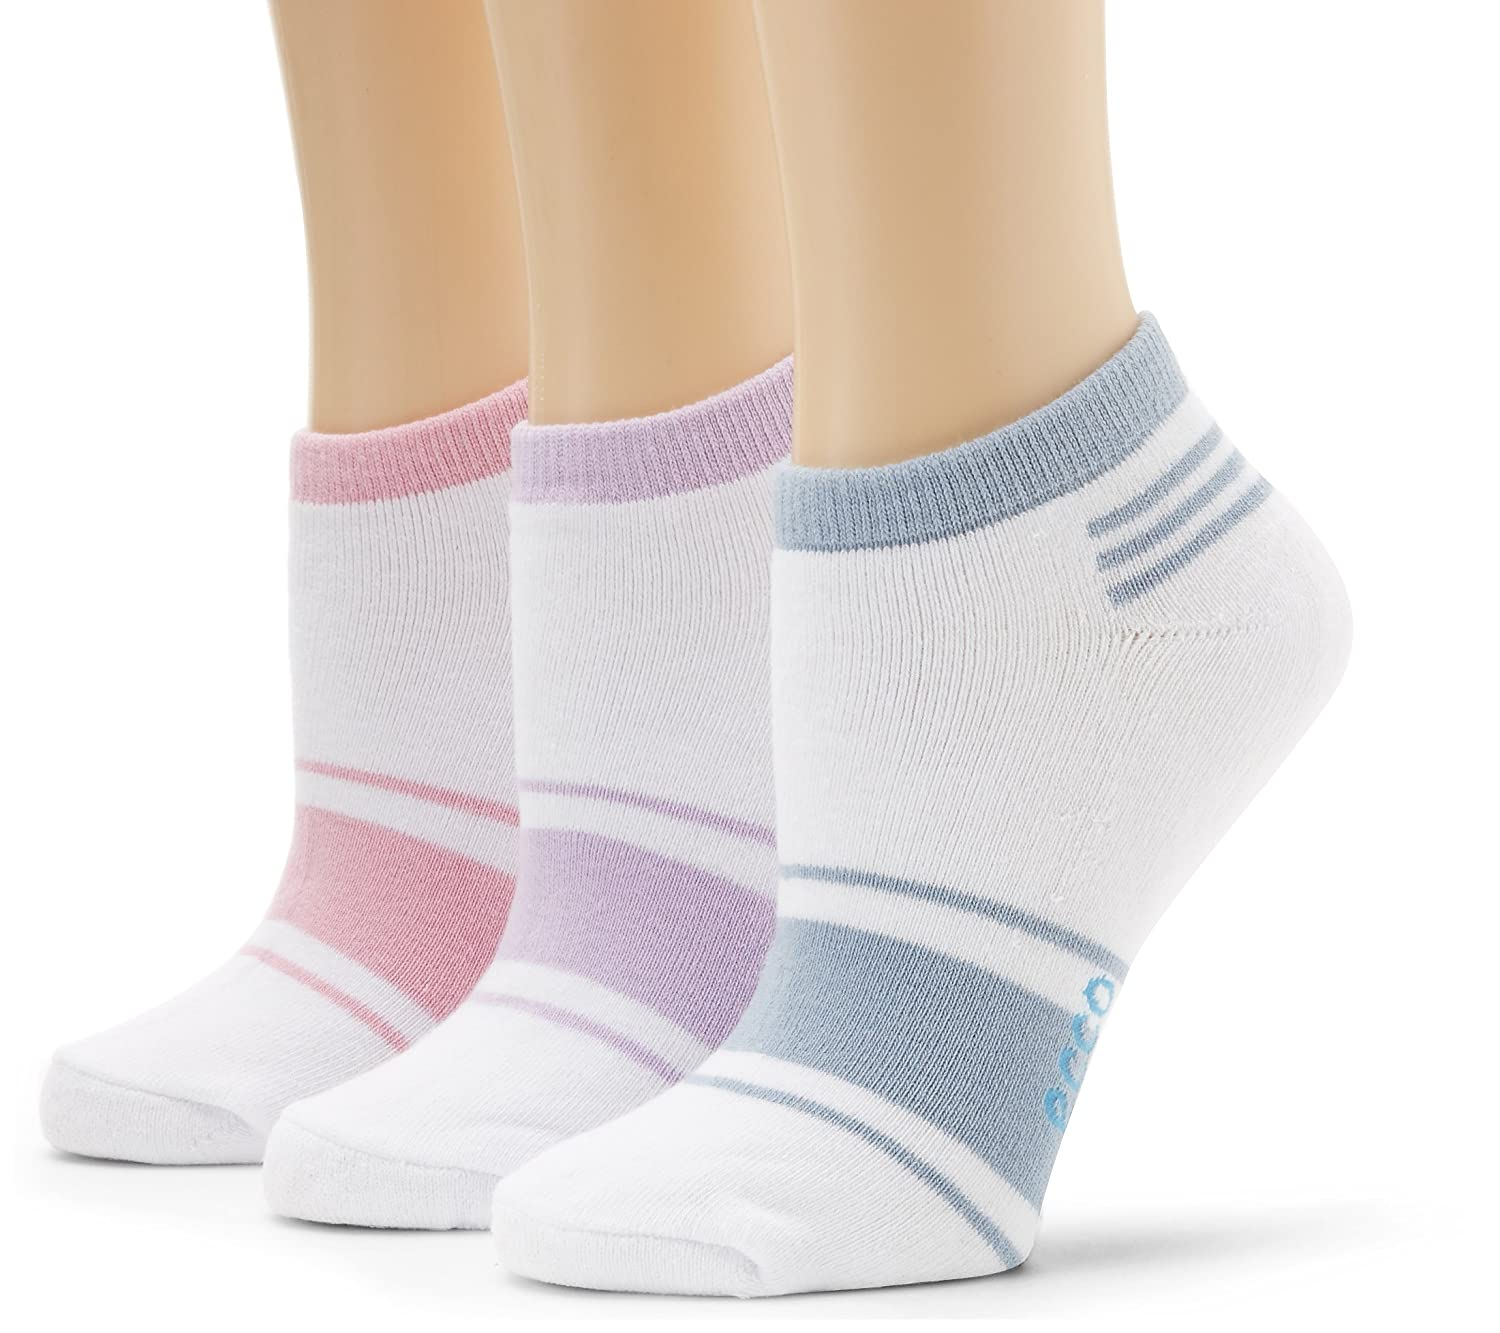 ECCO Women's No Show Logo Assorted Color Socks Lavender/Powder Blue/Pink 9/11 E3CLS26